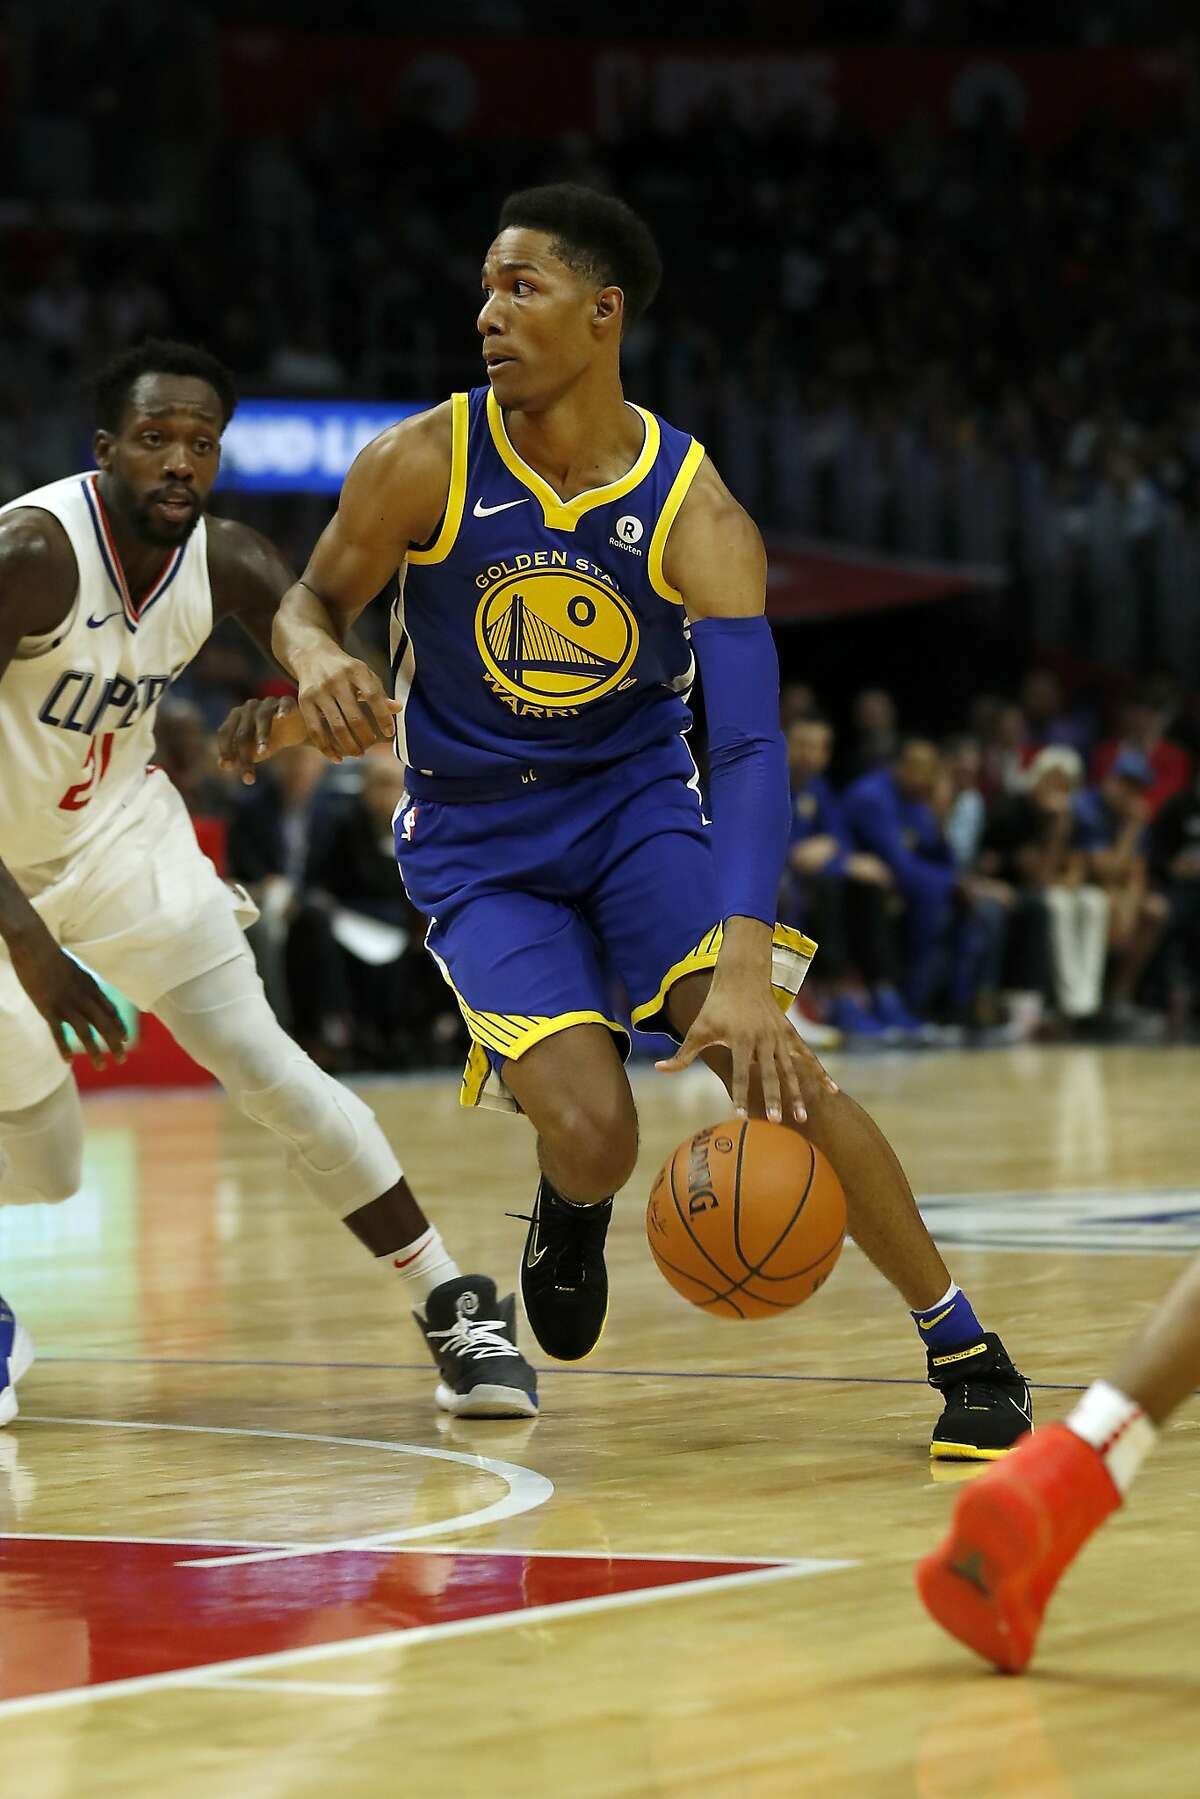 Golden State Warriors guard Patrick McCaw dribbles during the second half of an NBA basketball game against the Los Angeles Clippers, Monday, Oct. 30, 2017, in Los Angeles. (AP Photo/Ryan Kang)